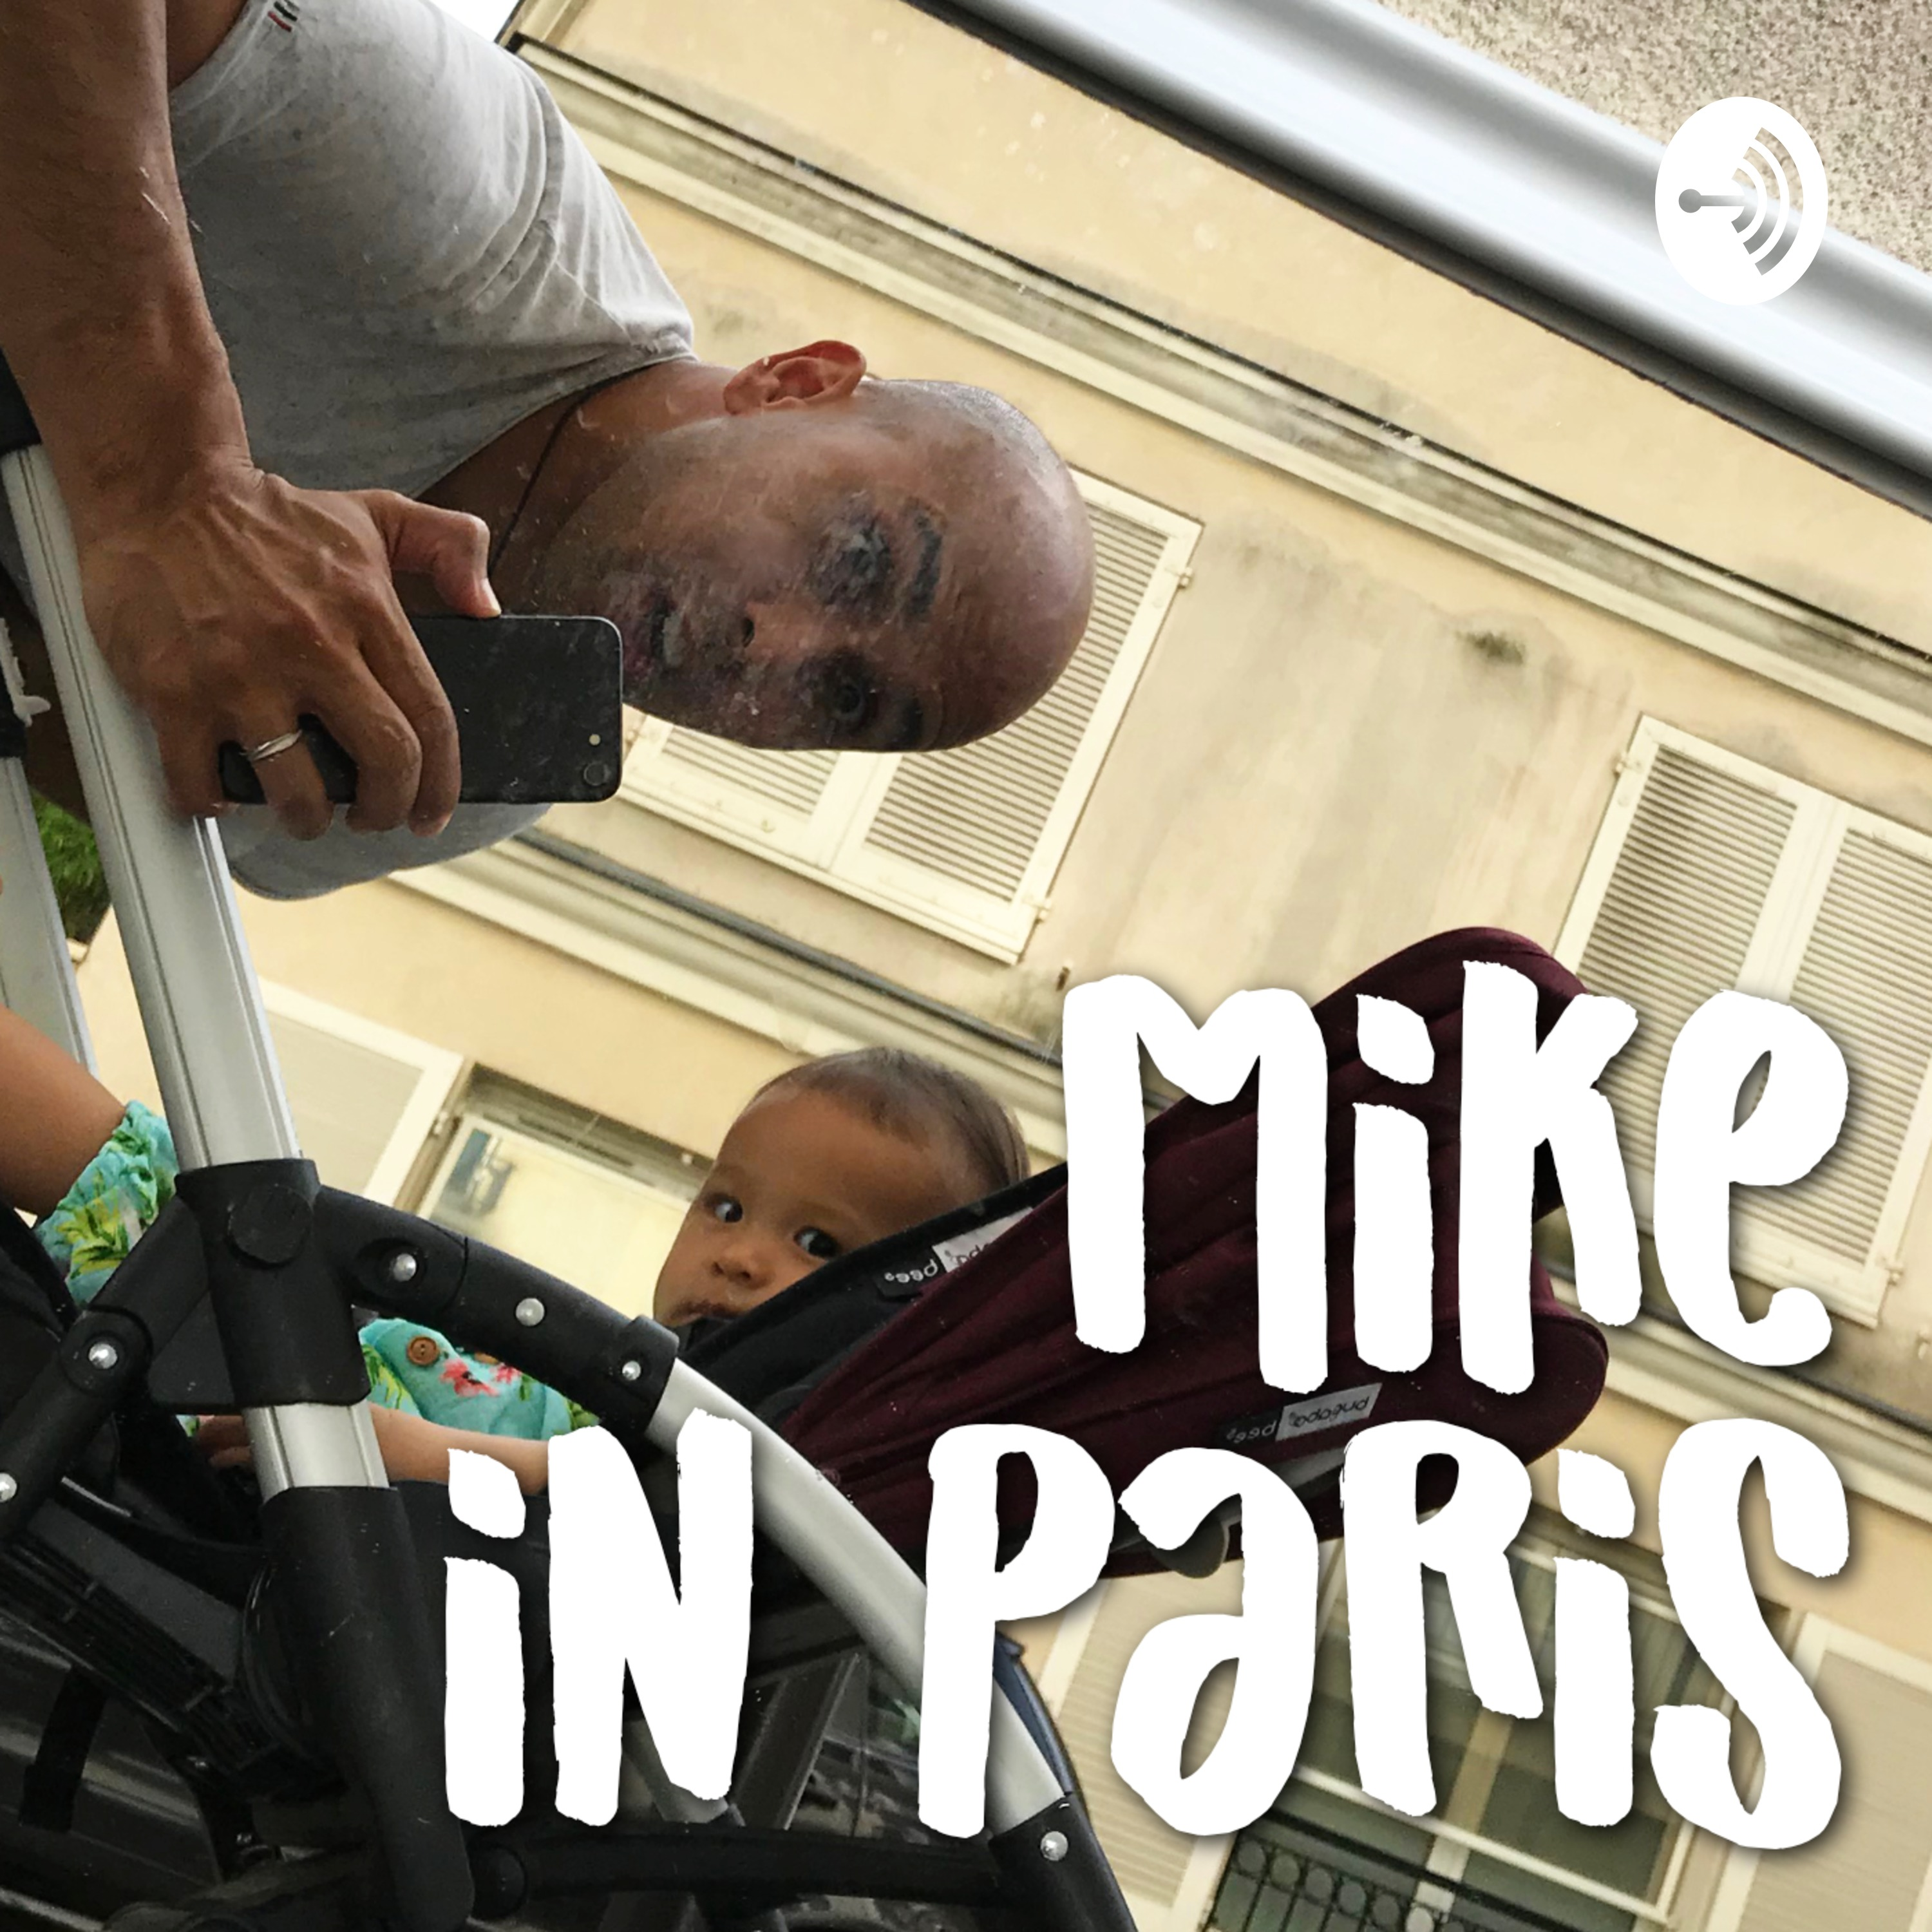 Mike and paris